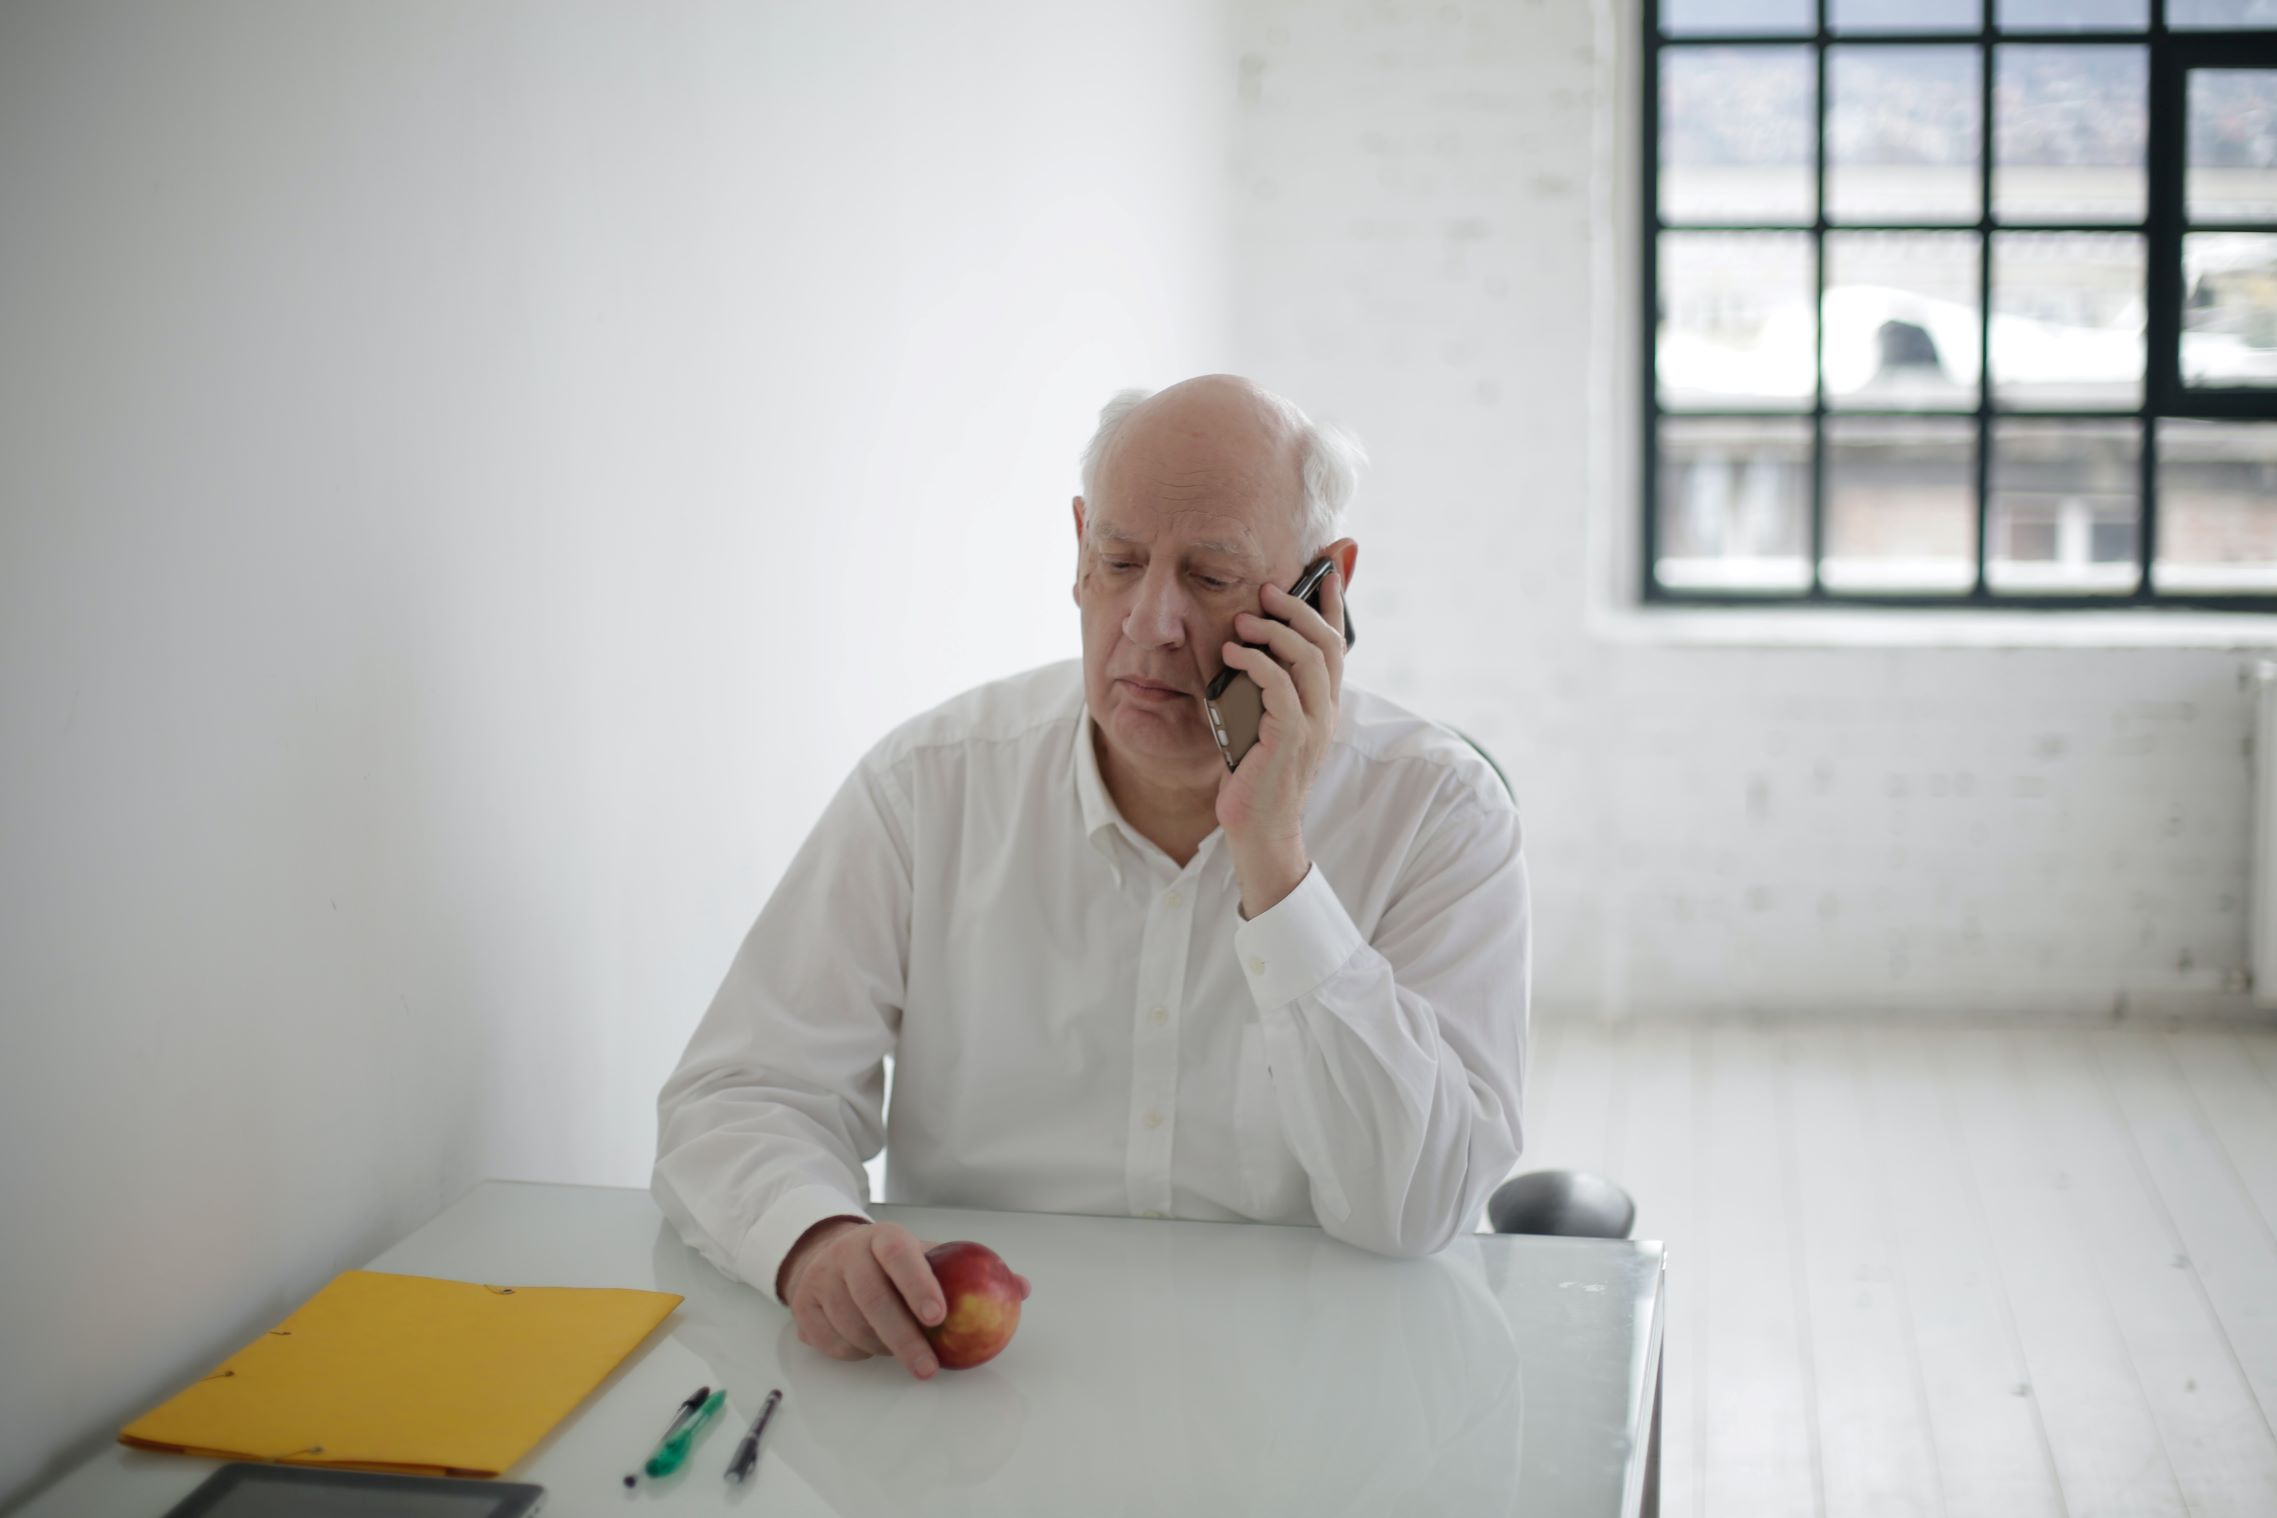 senior man on phone scammer call covid-19 apple at table